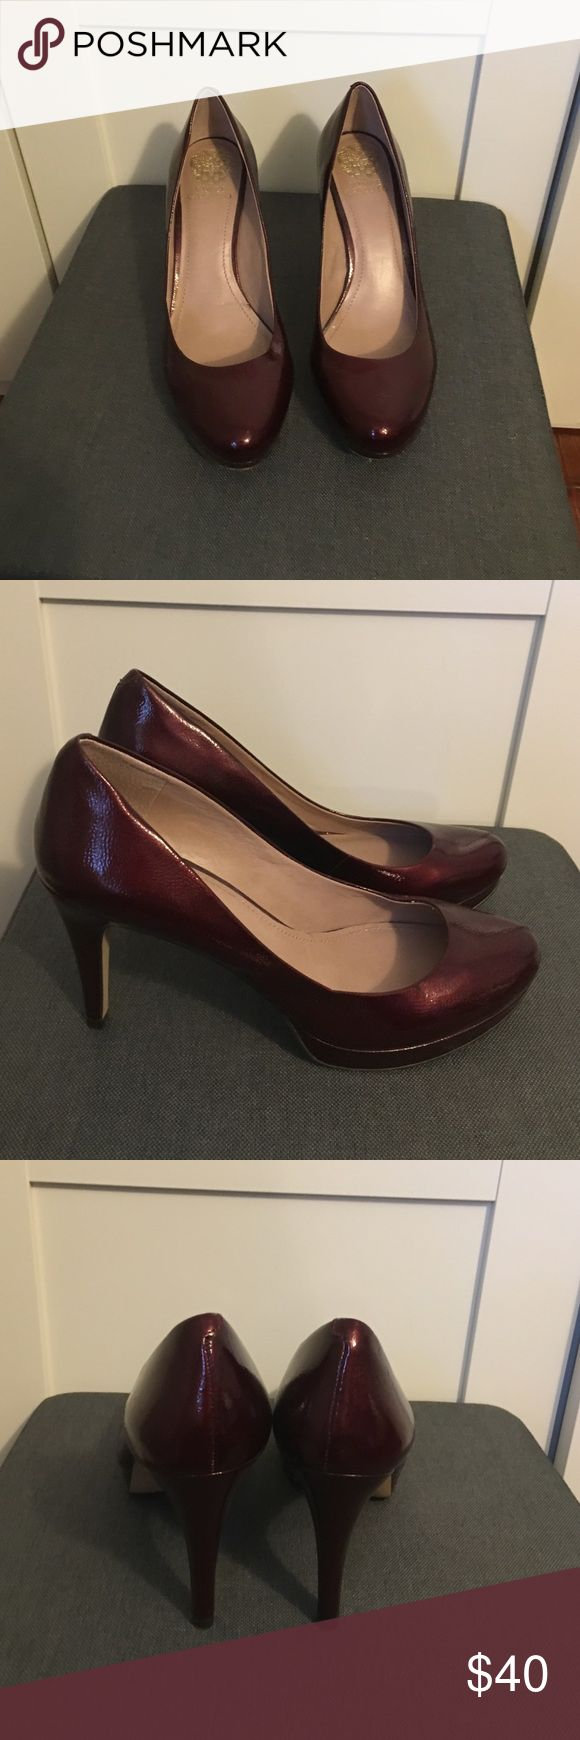 Vince Camuto 4 inch heels Vince Camuto 4 inch heels size 9 AM maroon color excellent condition front tow has slight platform for comfort. Make an offer. Vince Camuto Shoes Heels